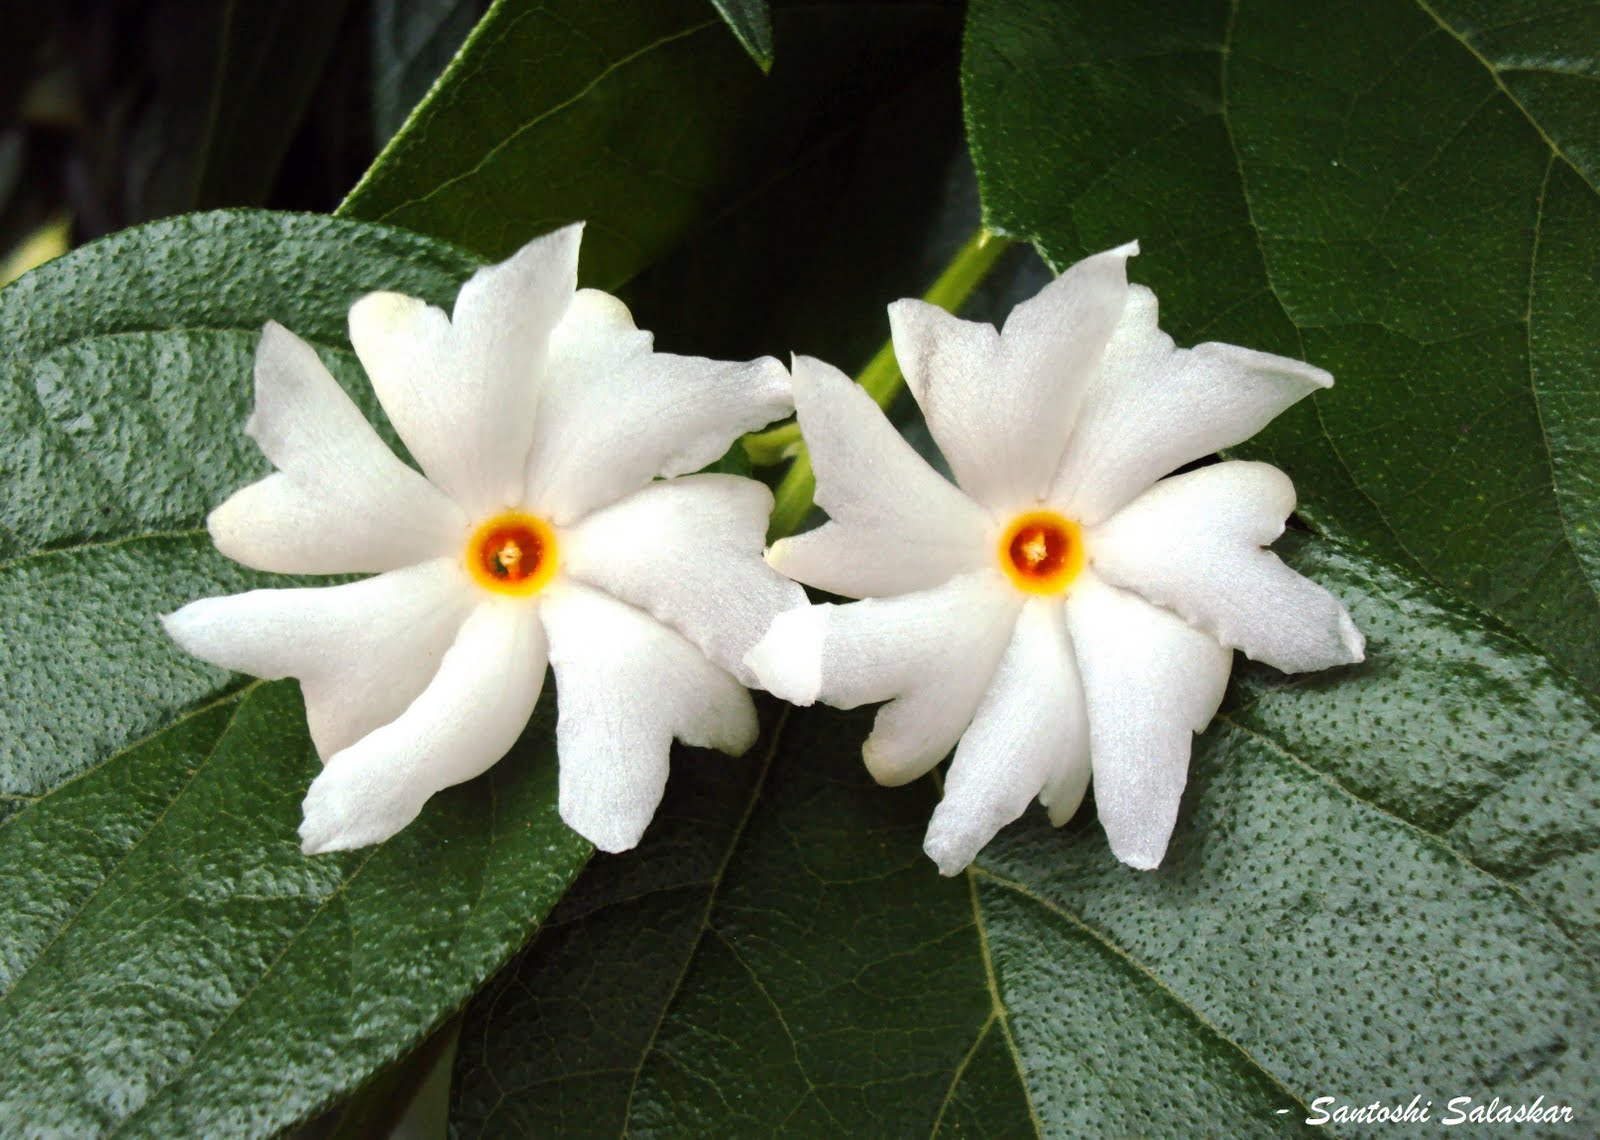 Parijat (also spelled Paarijat or Paarijaata) - Night flowering Jasmine